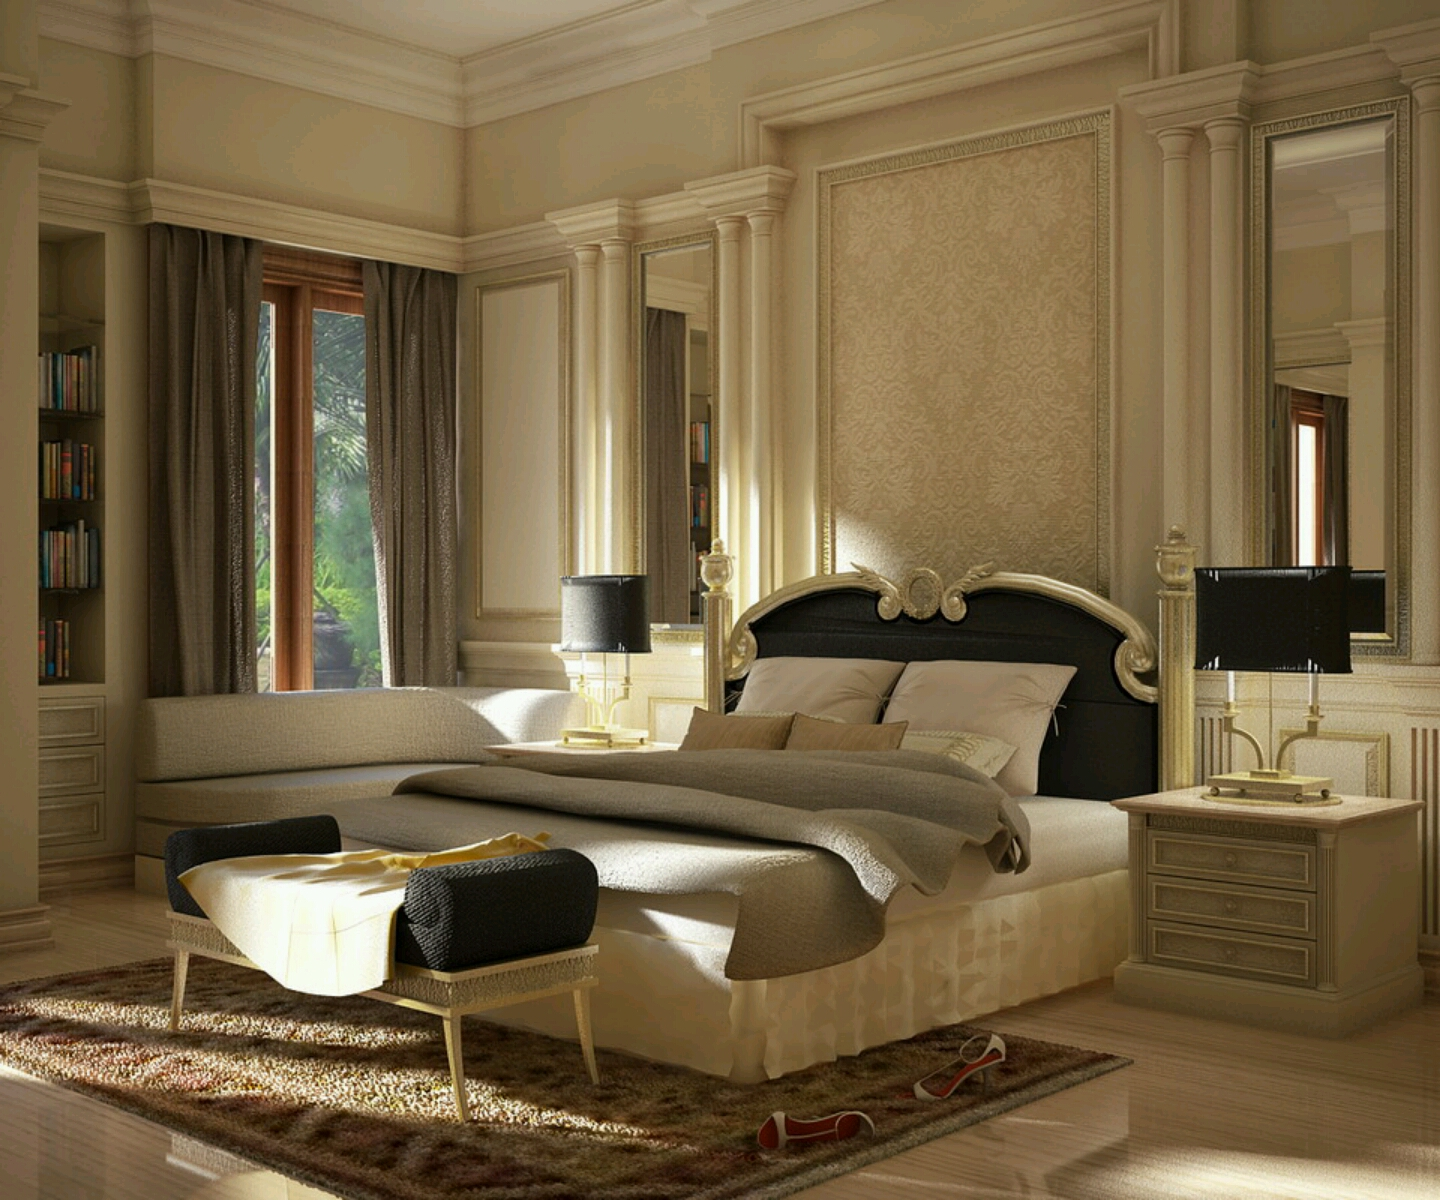 Classic Bedroom Design Ideas-3.bp.blogspot.com